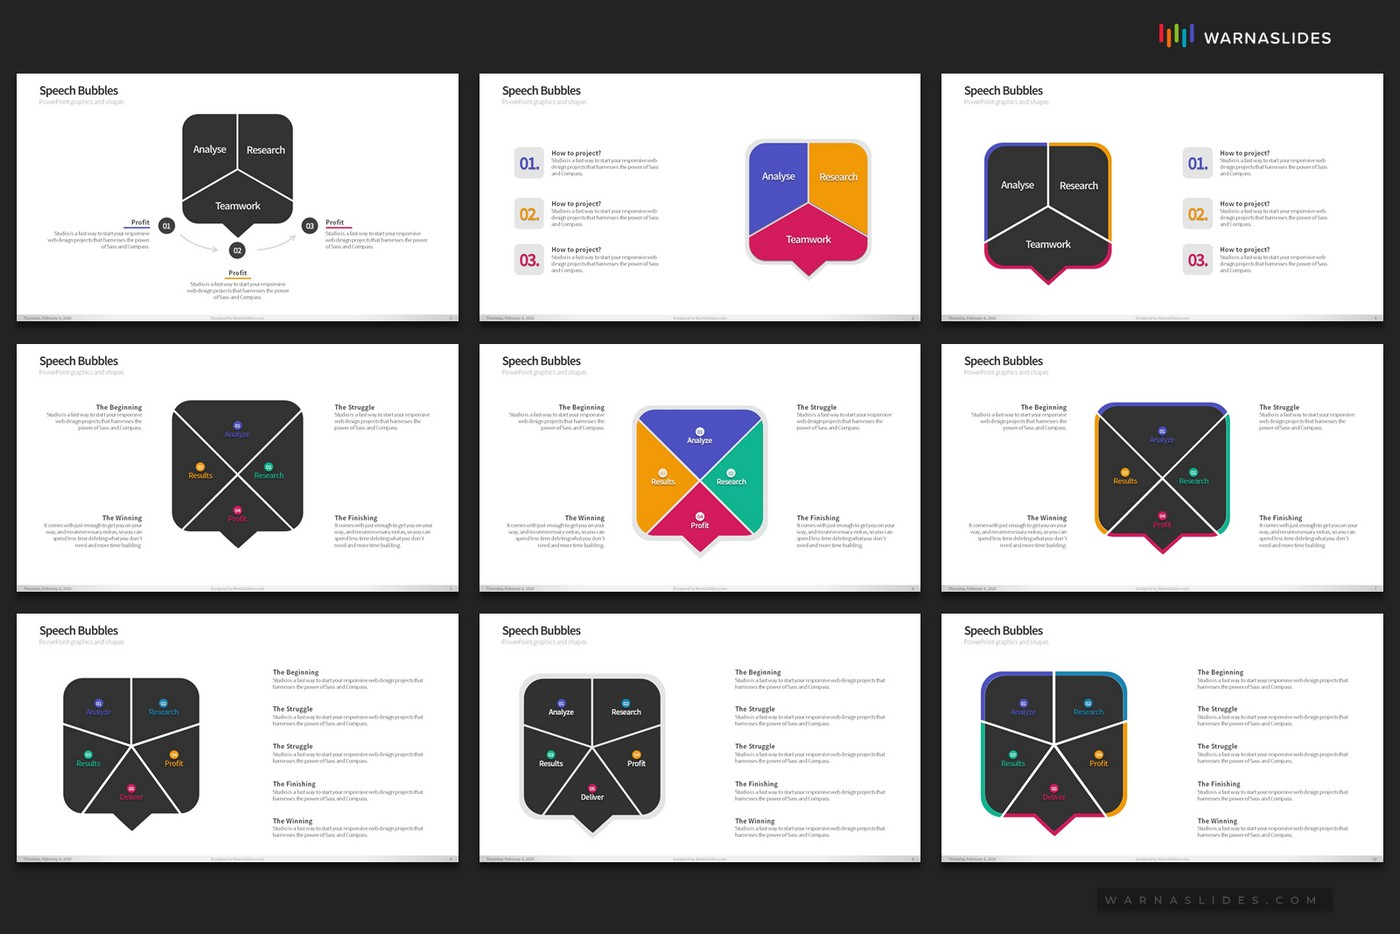 Speech-Bubbles-Communication-PowerPoint-Template-for-Business-Pitch-Deck-Professional-Creative-PowerPoint-Icons-006